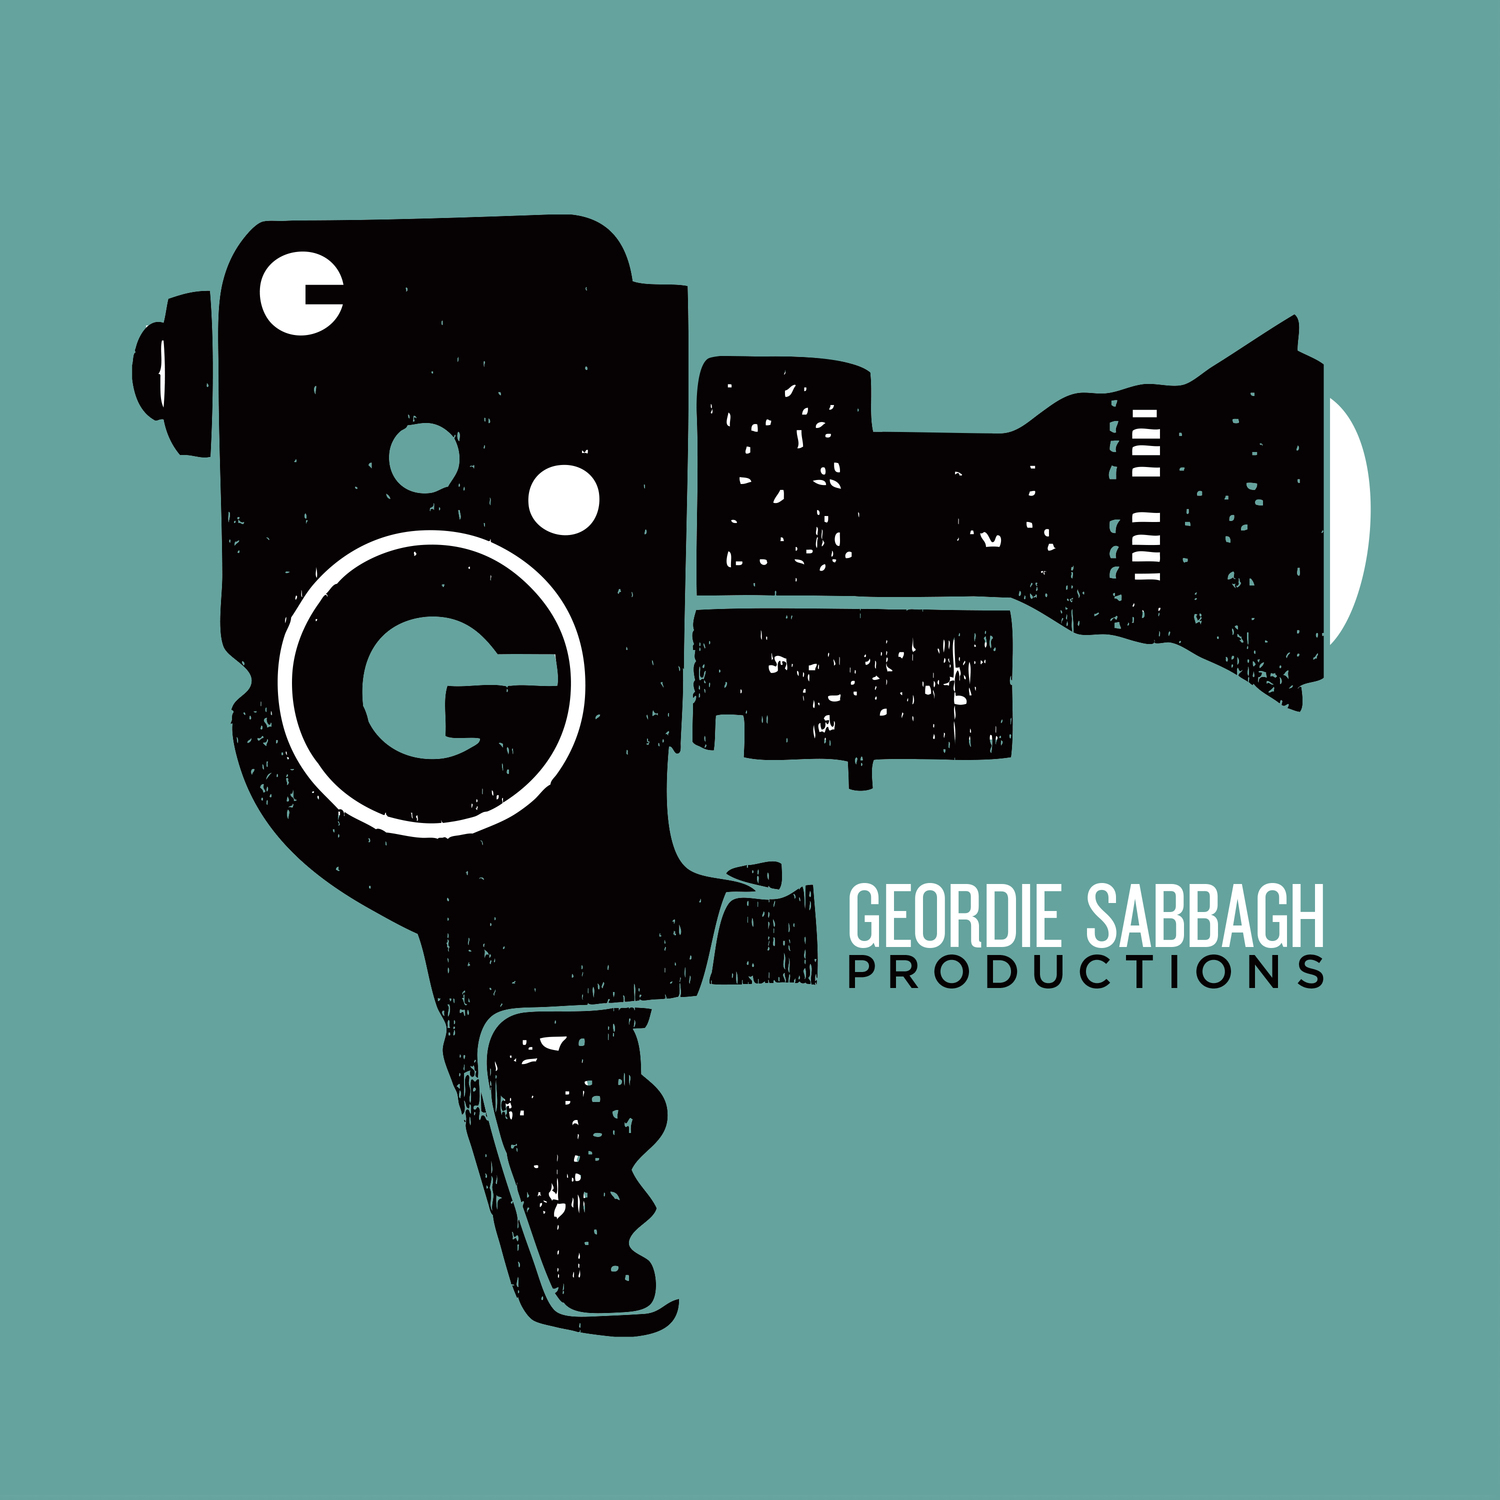 Geordie Sabbagh Productions